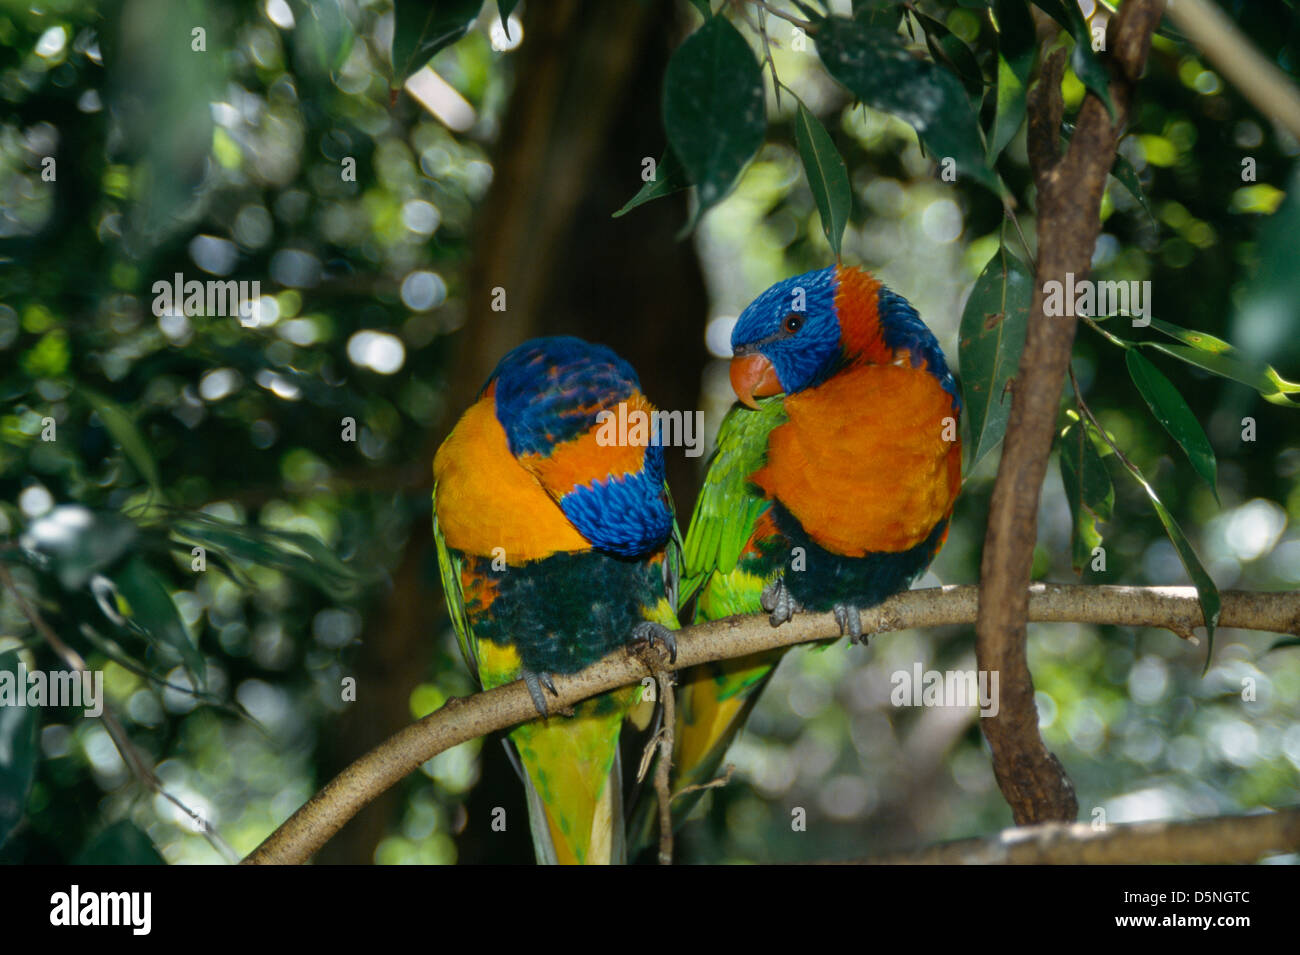 red-collared-lorikeets-australia-D5NGTC.